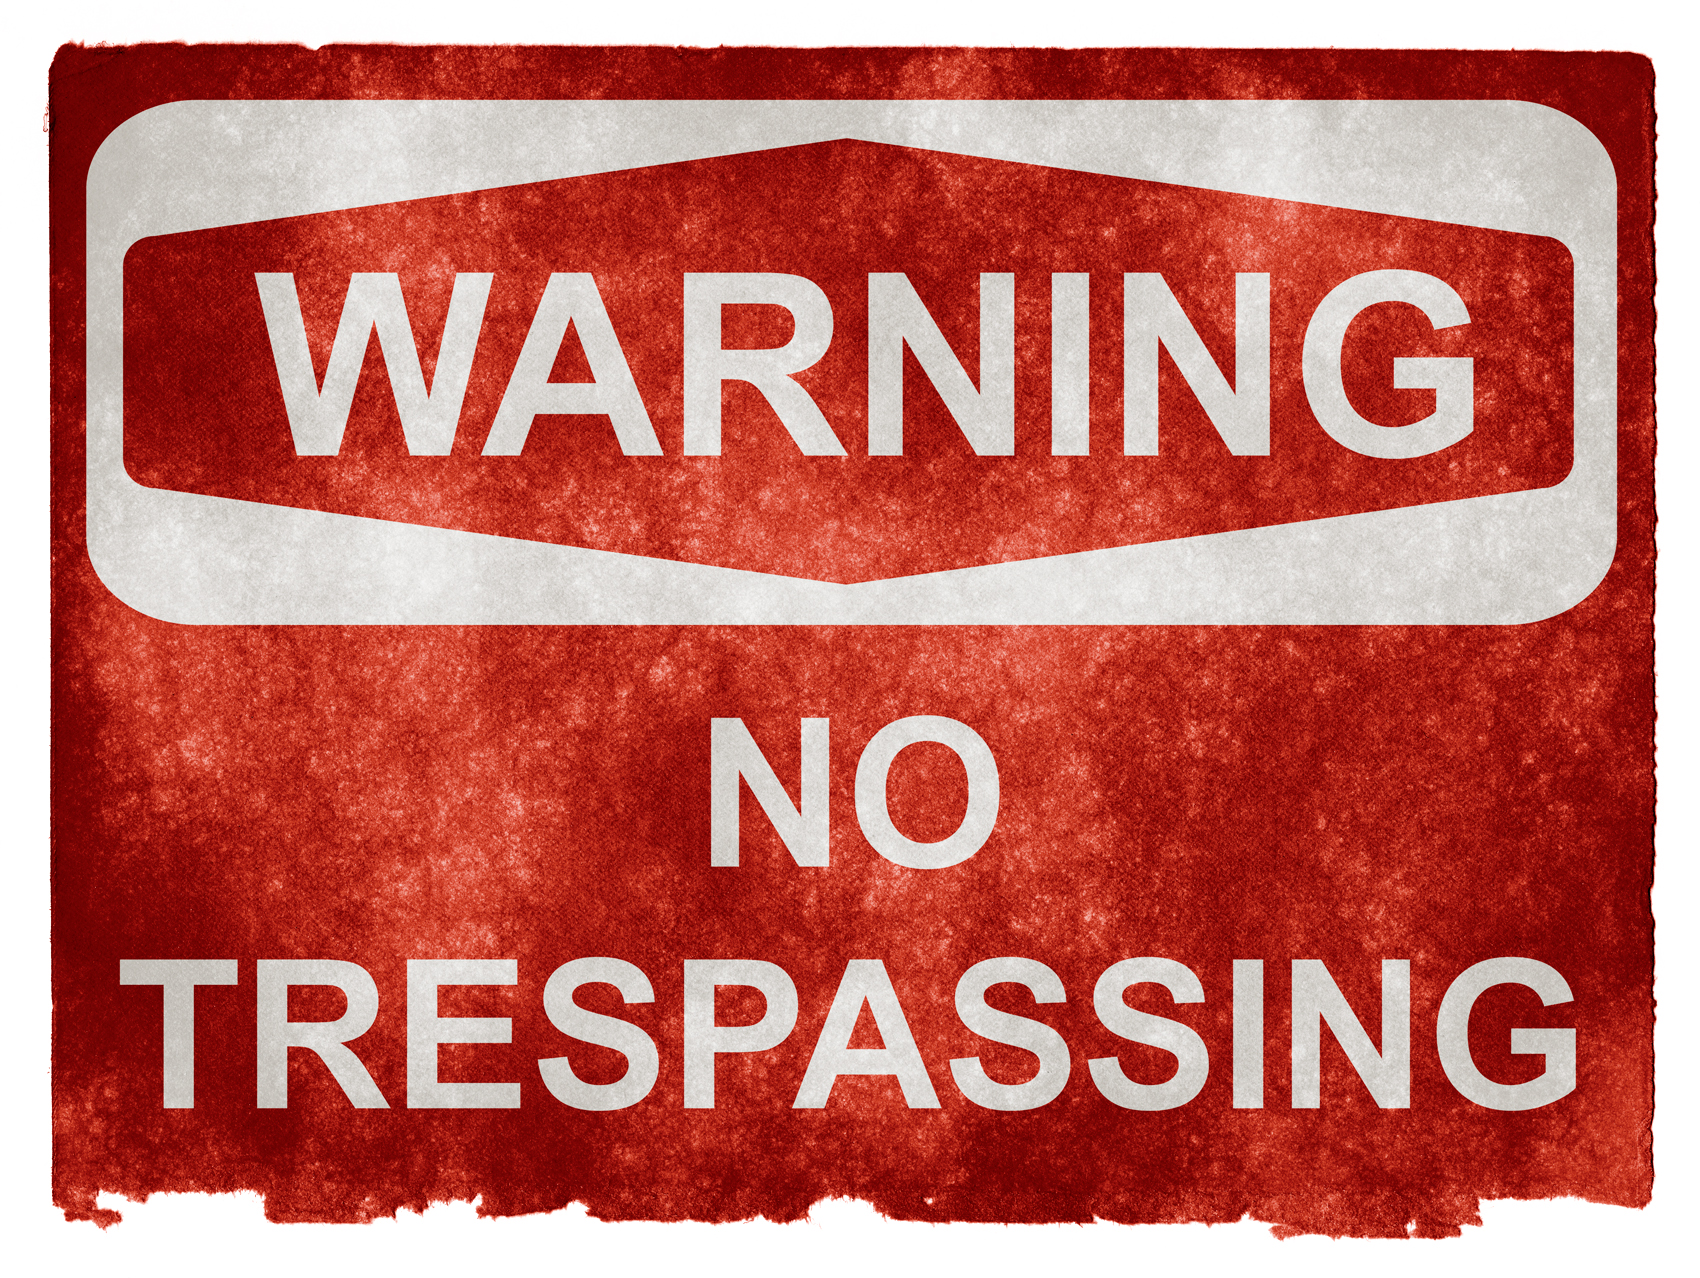 Grunge warning sign - no trespassing photo